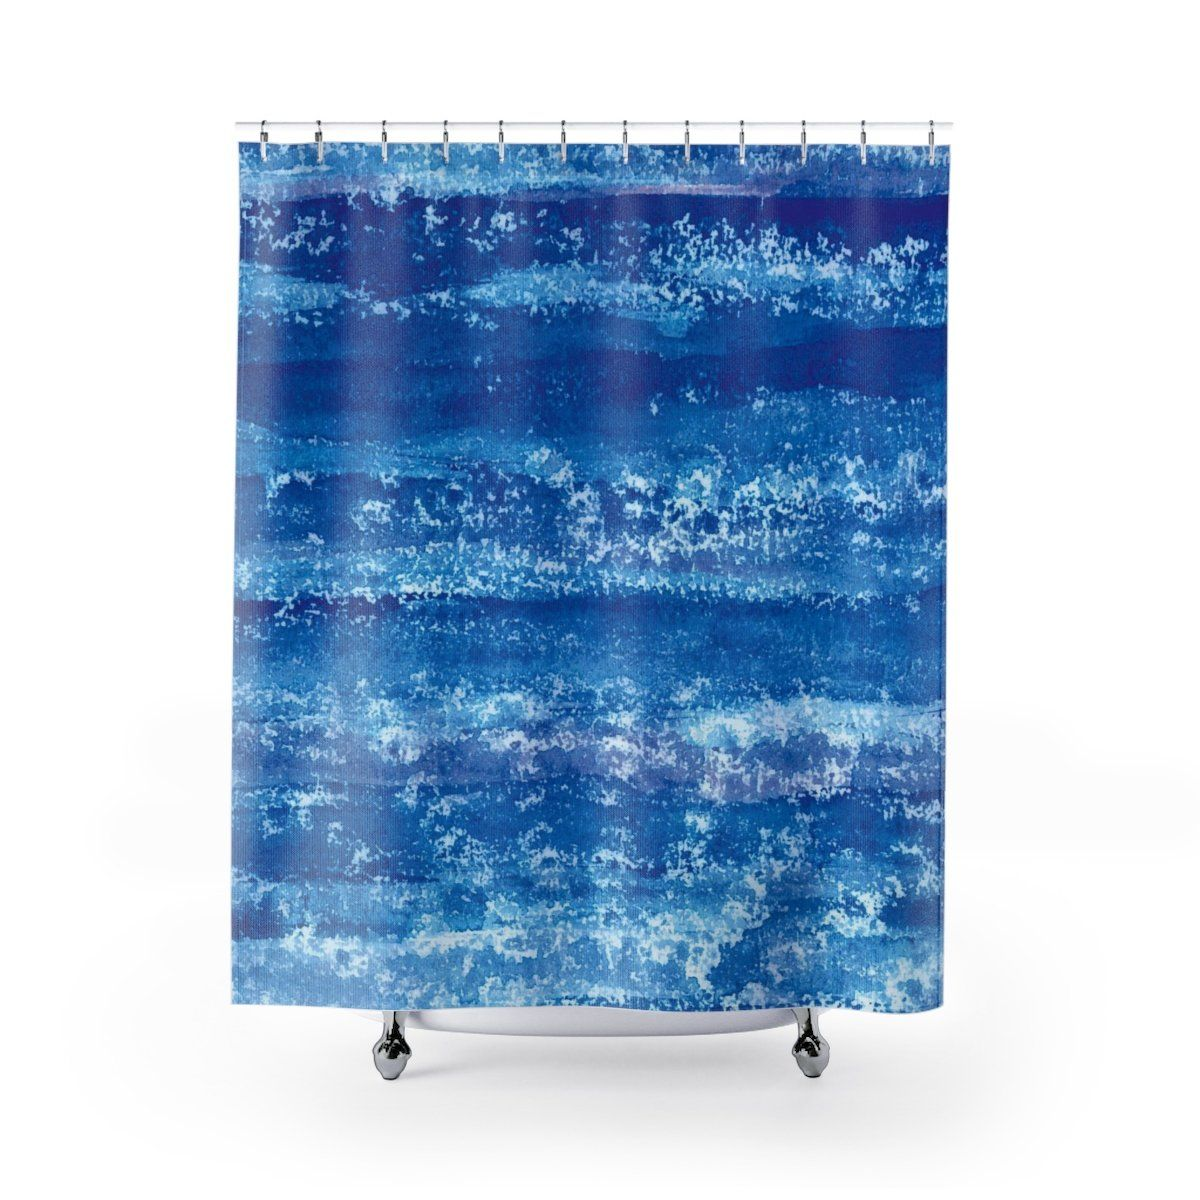 Deep Blue Watercolor With Lace Mandala Shell Print Shower Curtain